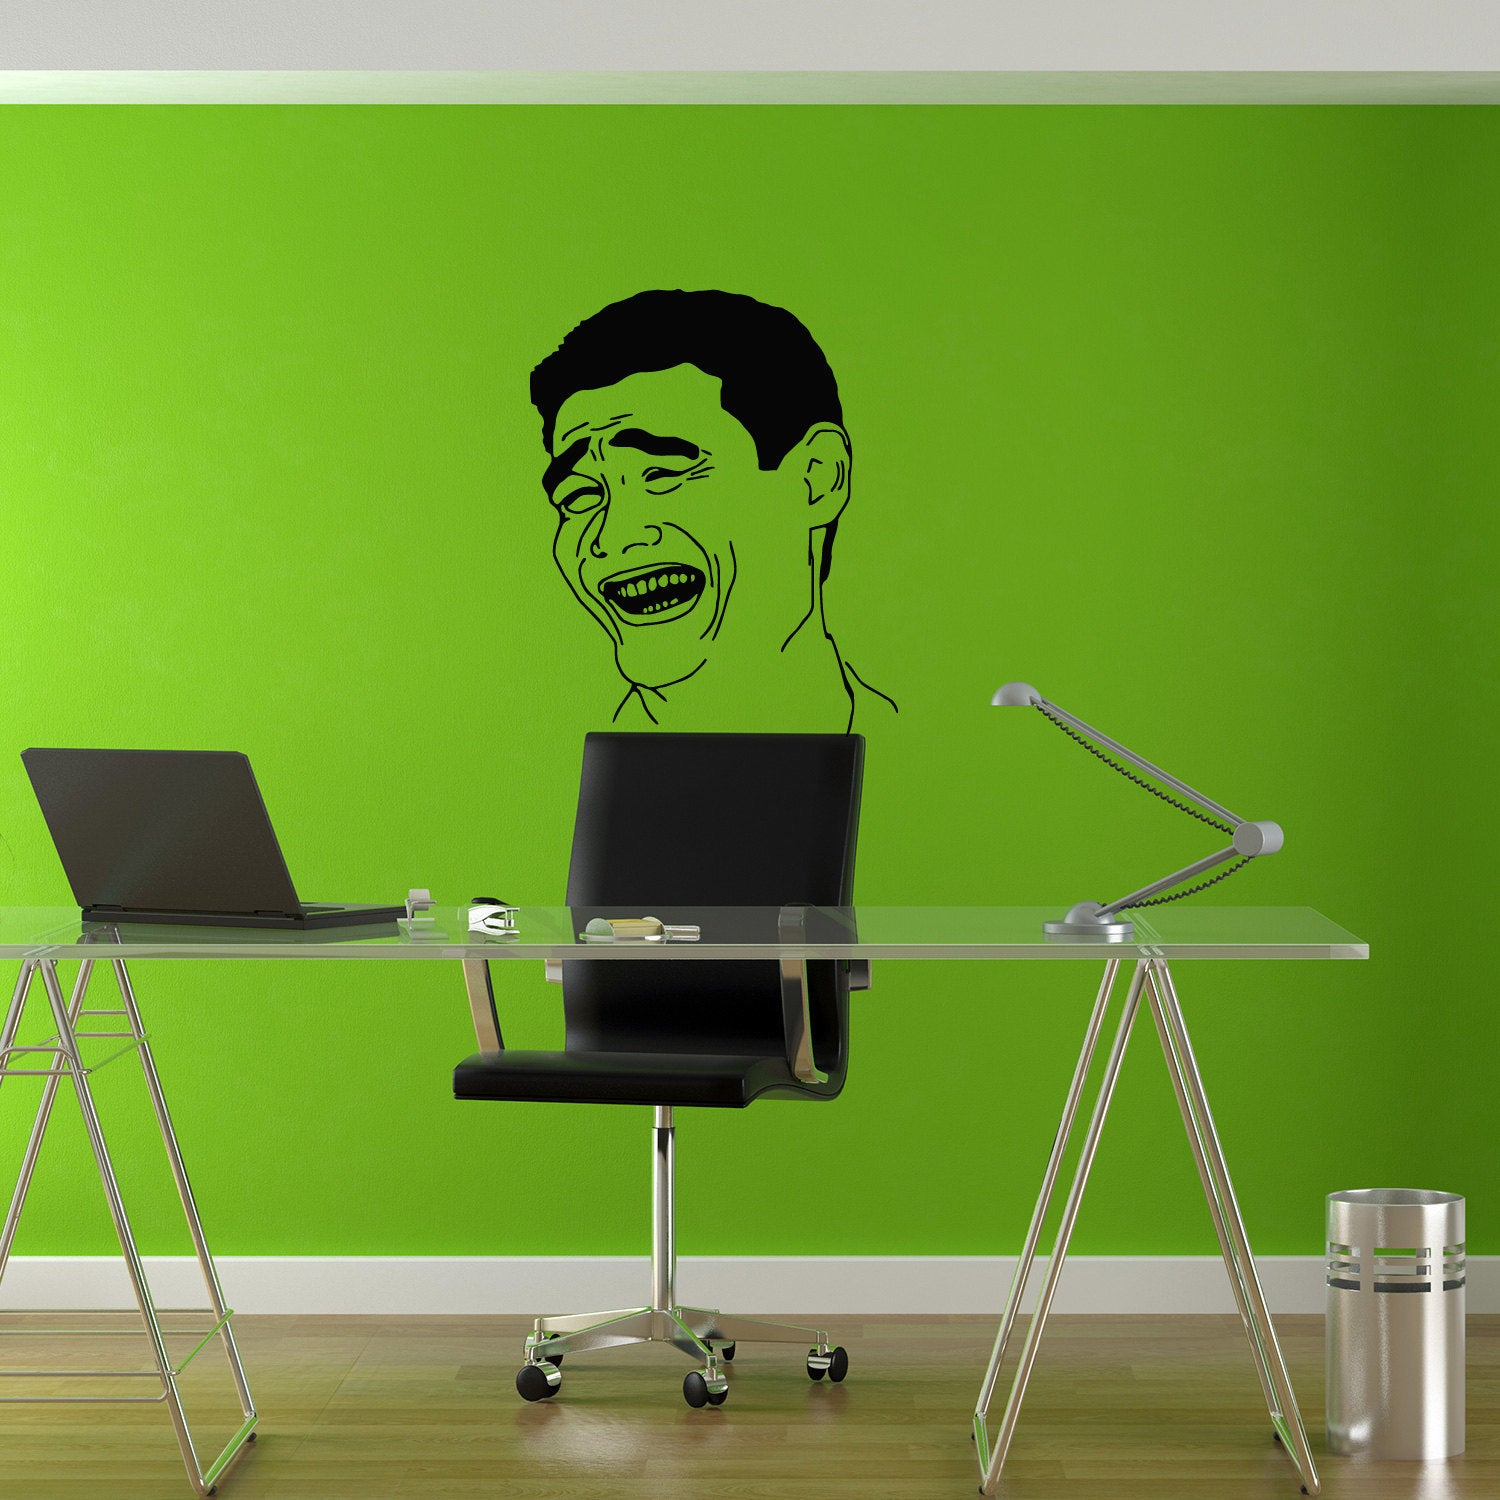 Shop troll face please meme funny decal sticker vinyl wall art free shipping on orders over 45 overstock com 10037172